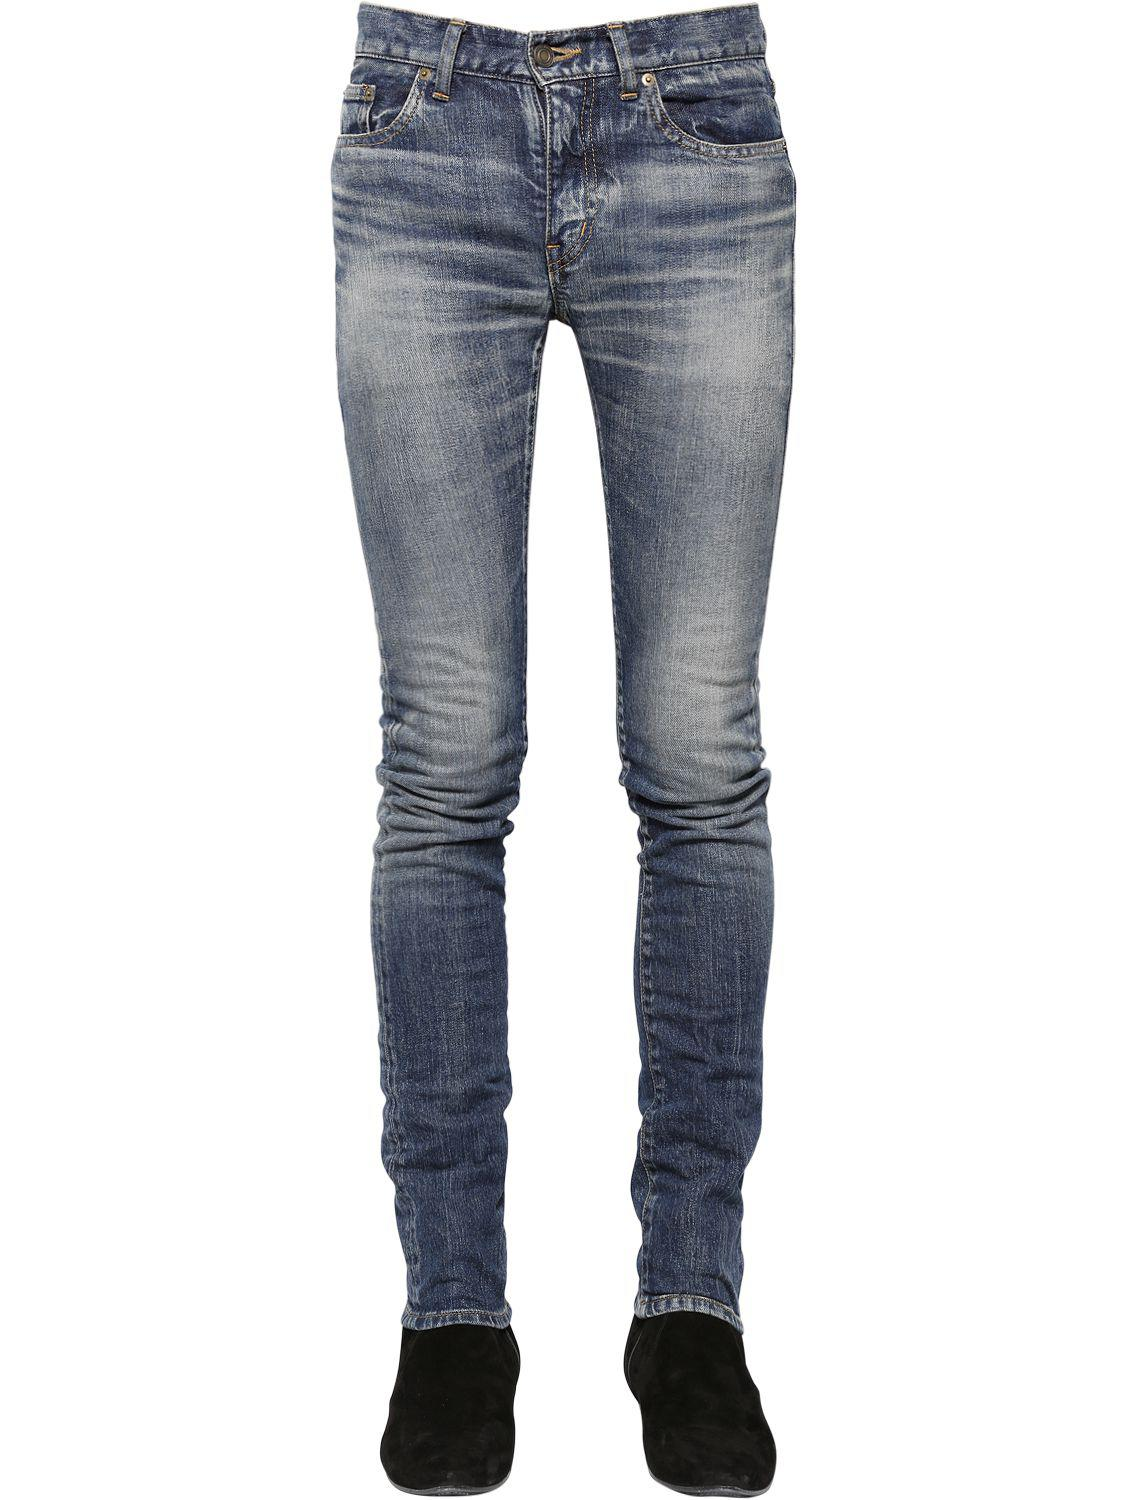 Low Rise Jeans Jeans All Bottoms Jeans View All High Rise Jeans Womens Low Rise Jeans. Save quickview. Low Rise Super Skinny Jeans. Harper Stretch. $78 $39 Clearance. Save quickview. United Kingdom: €5: € €5: Additional Shipping & Handling Information.